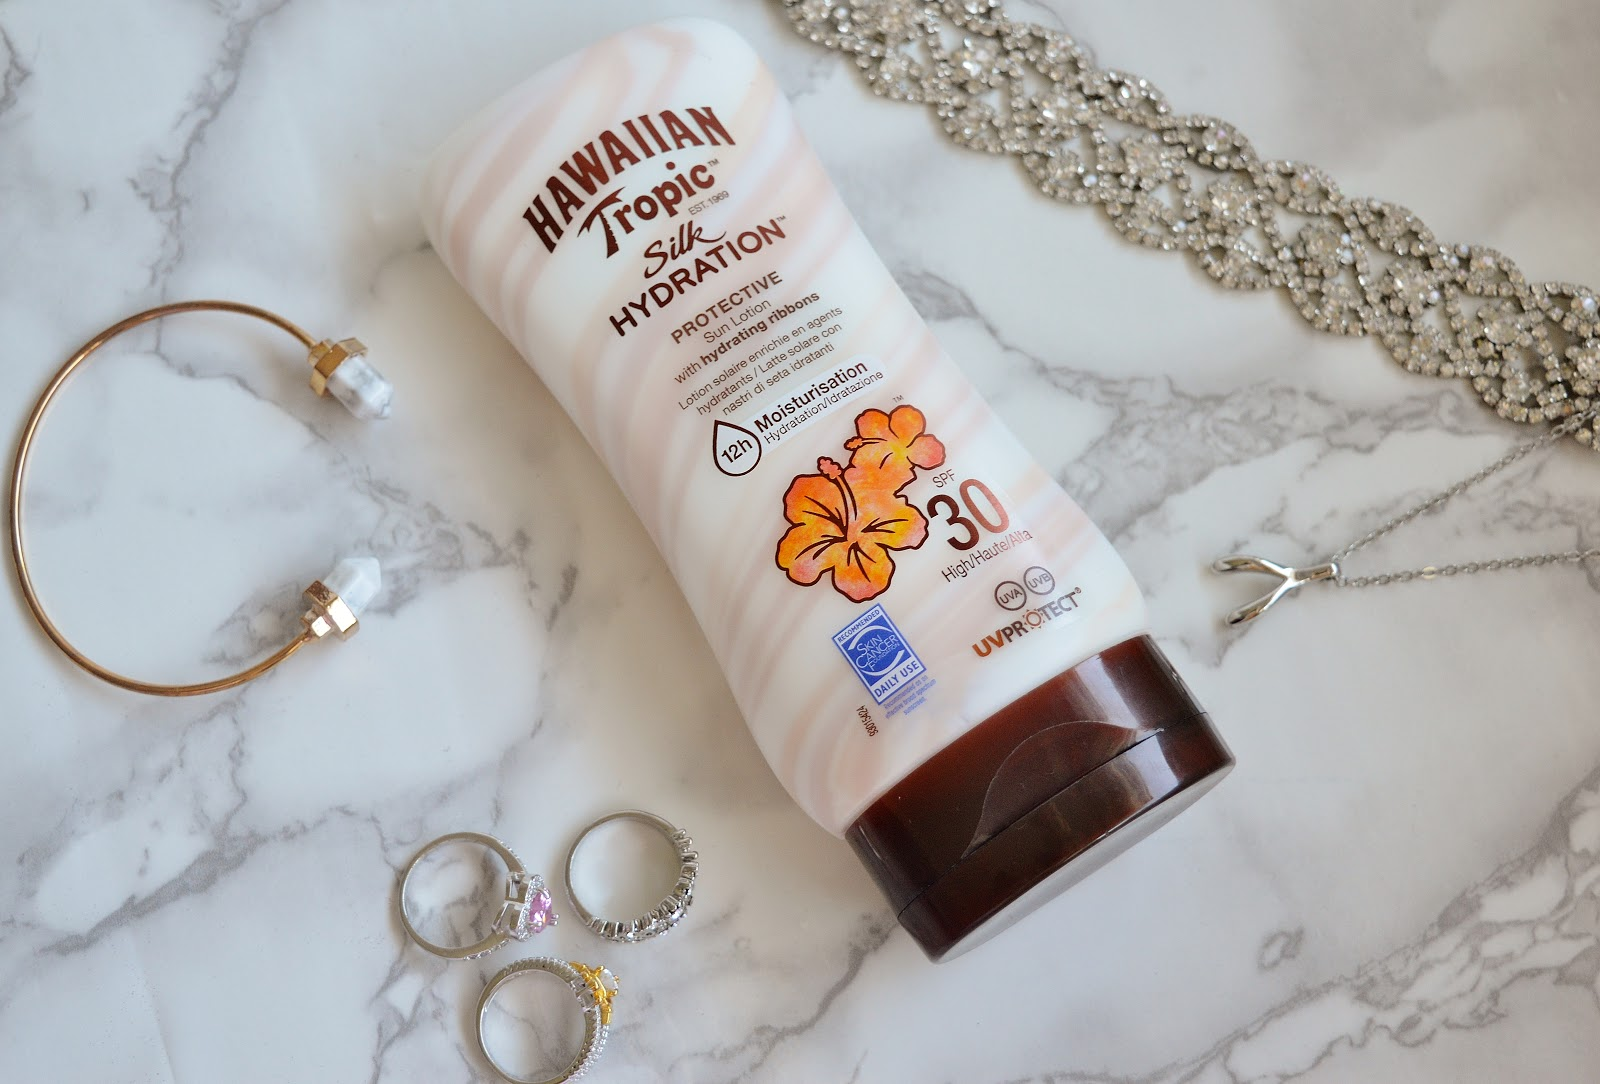 Hawaiian Tropic Silk Hydration Sun Lotion